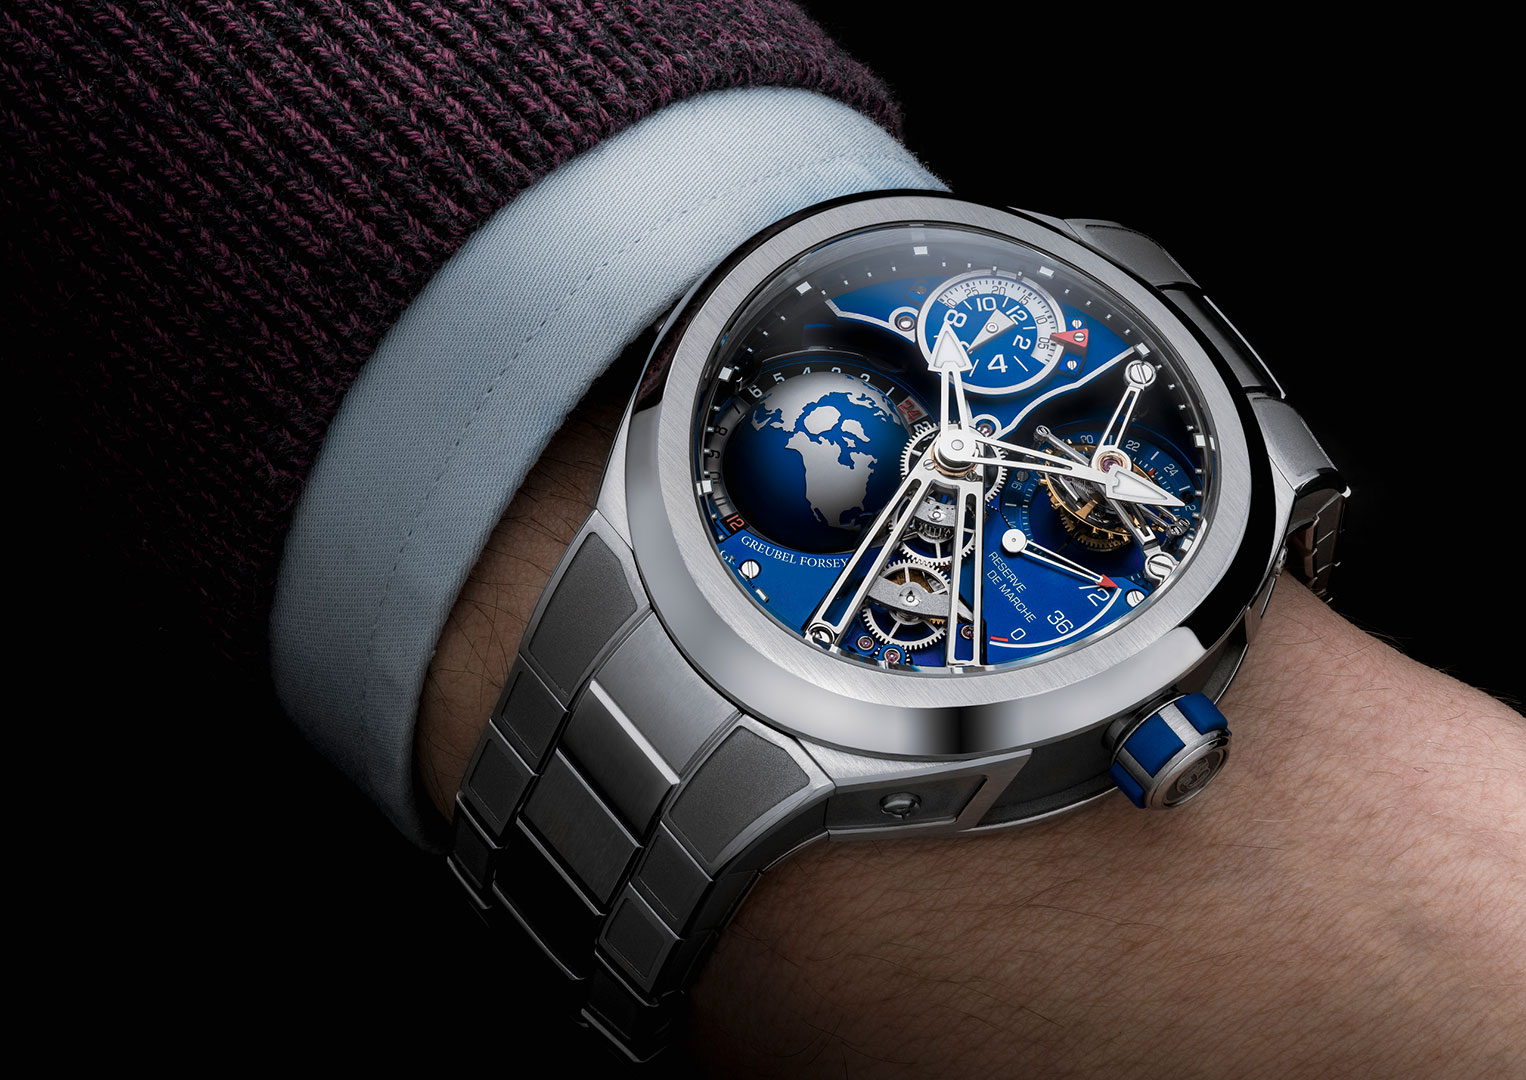 Greubel Forsey was founded in 2004 by Robert Greubel and Stephen Forsey